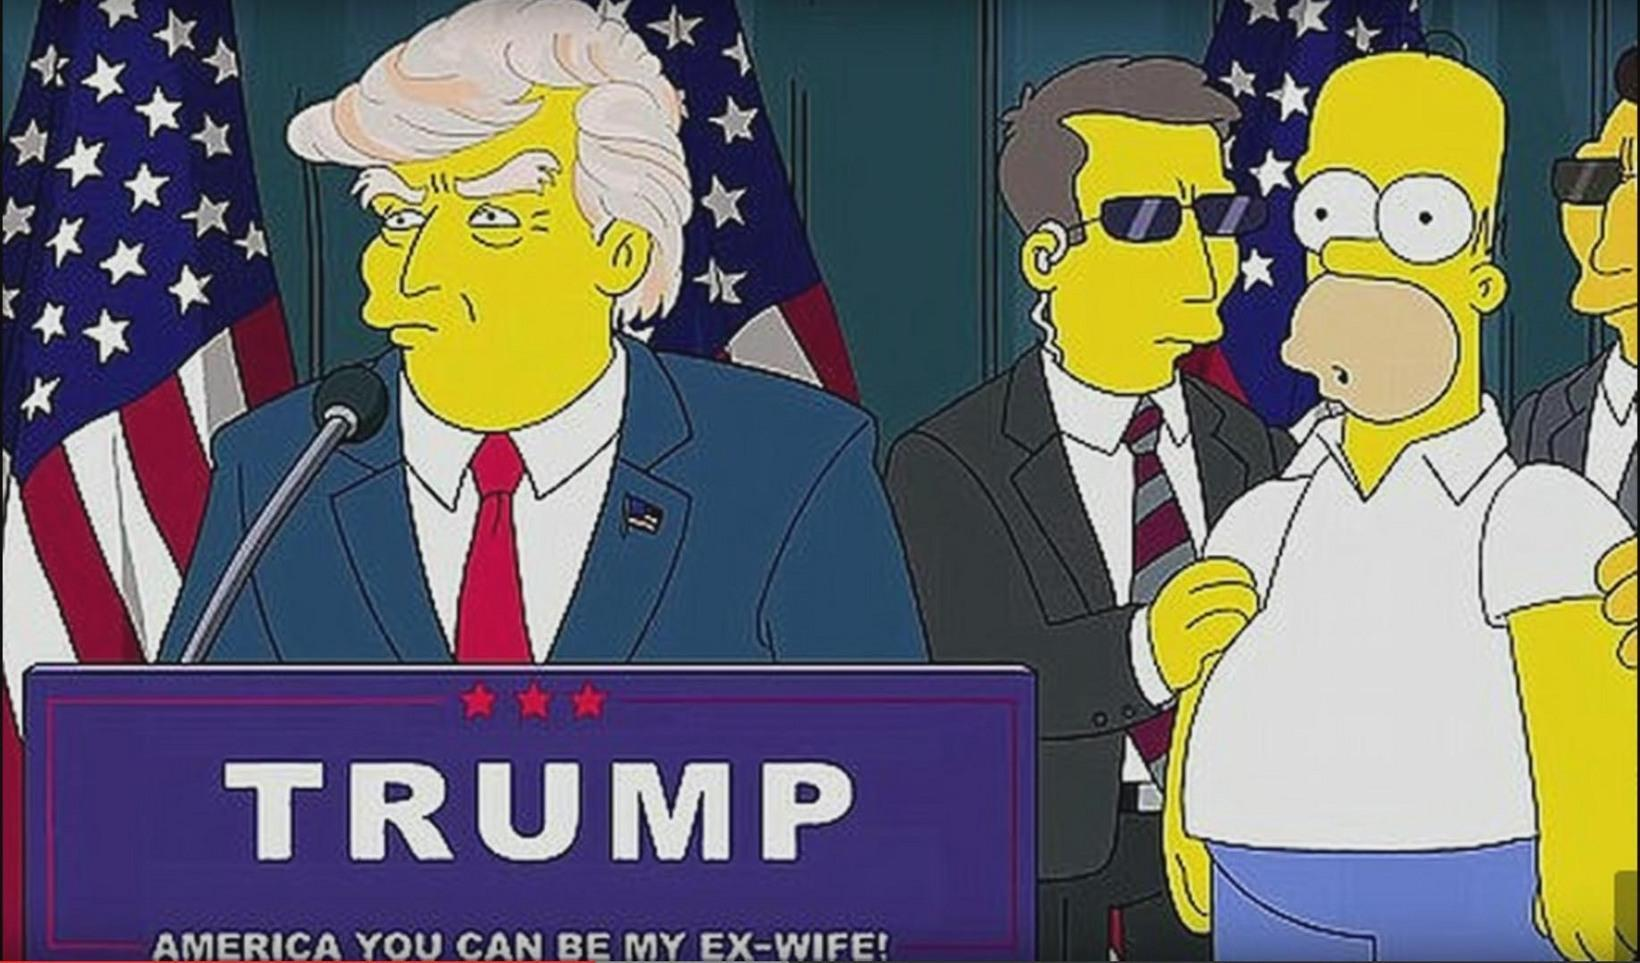 Times The Simpsons Accurately Predicted The Future The - Simpons us map vs real voters map